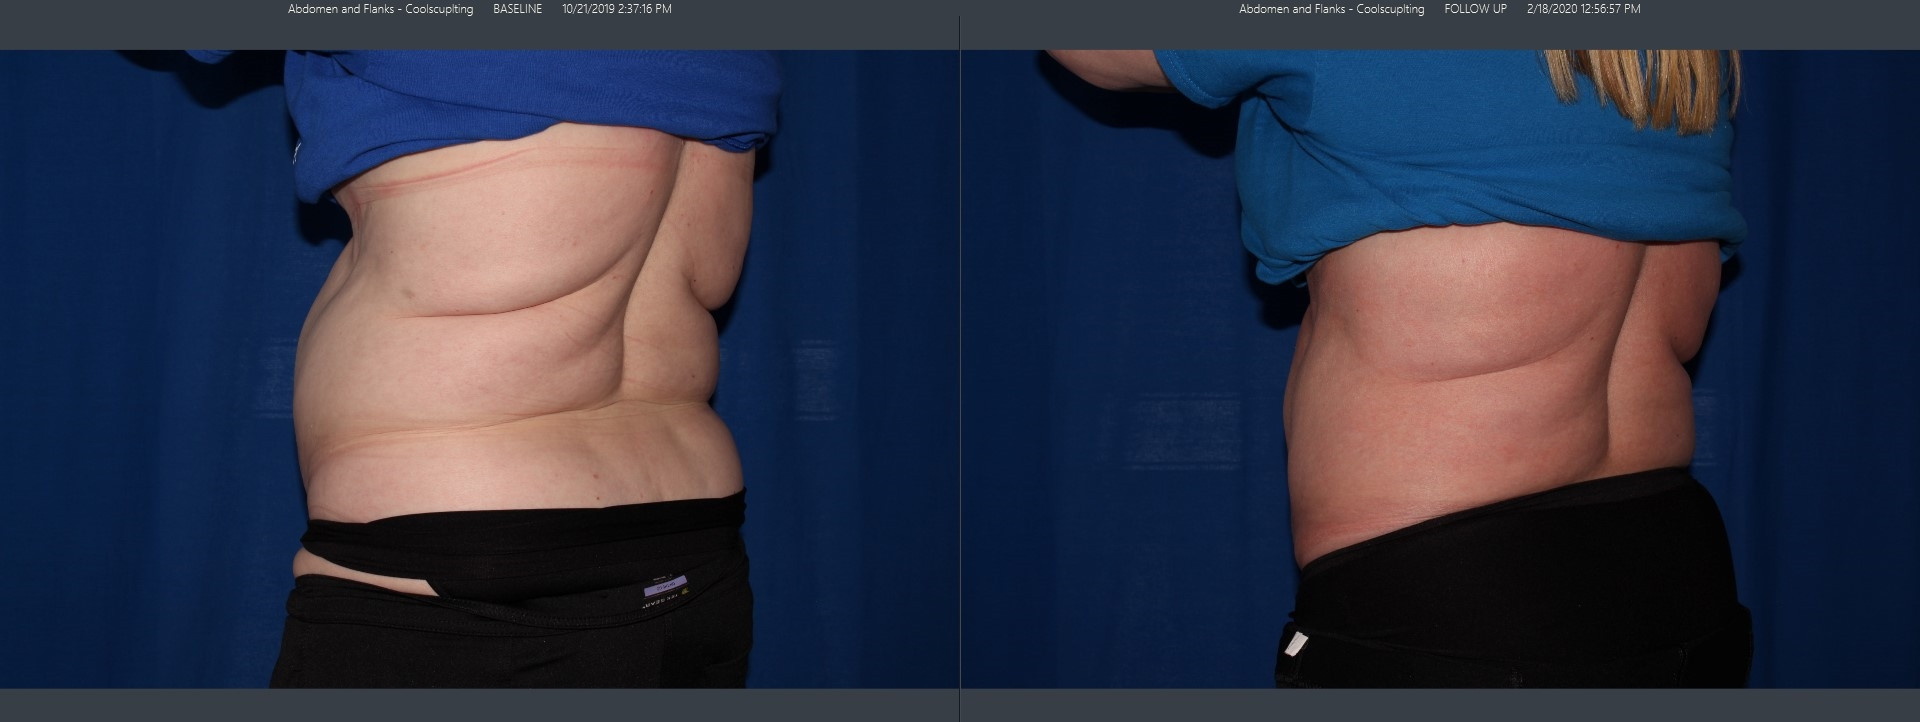 coolsculpting before and after abdomen flank stomach